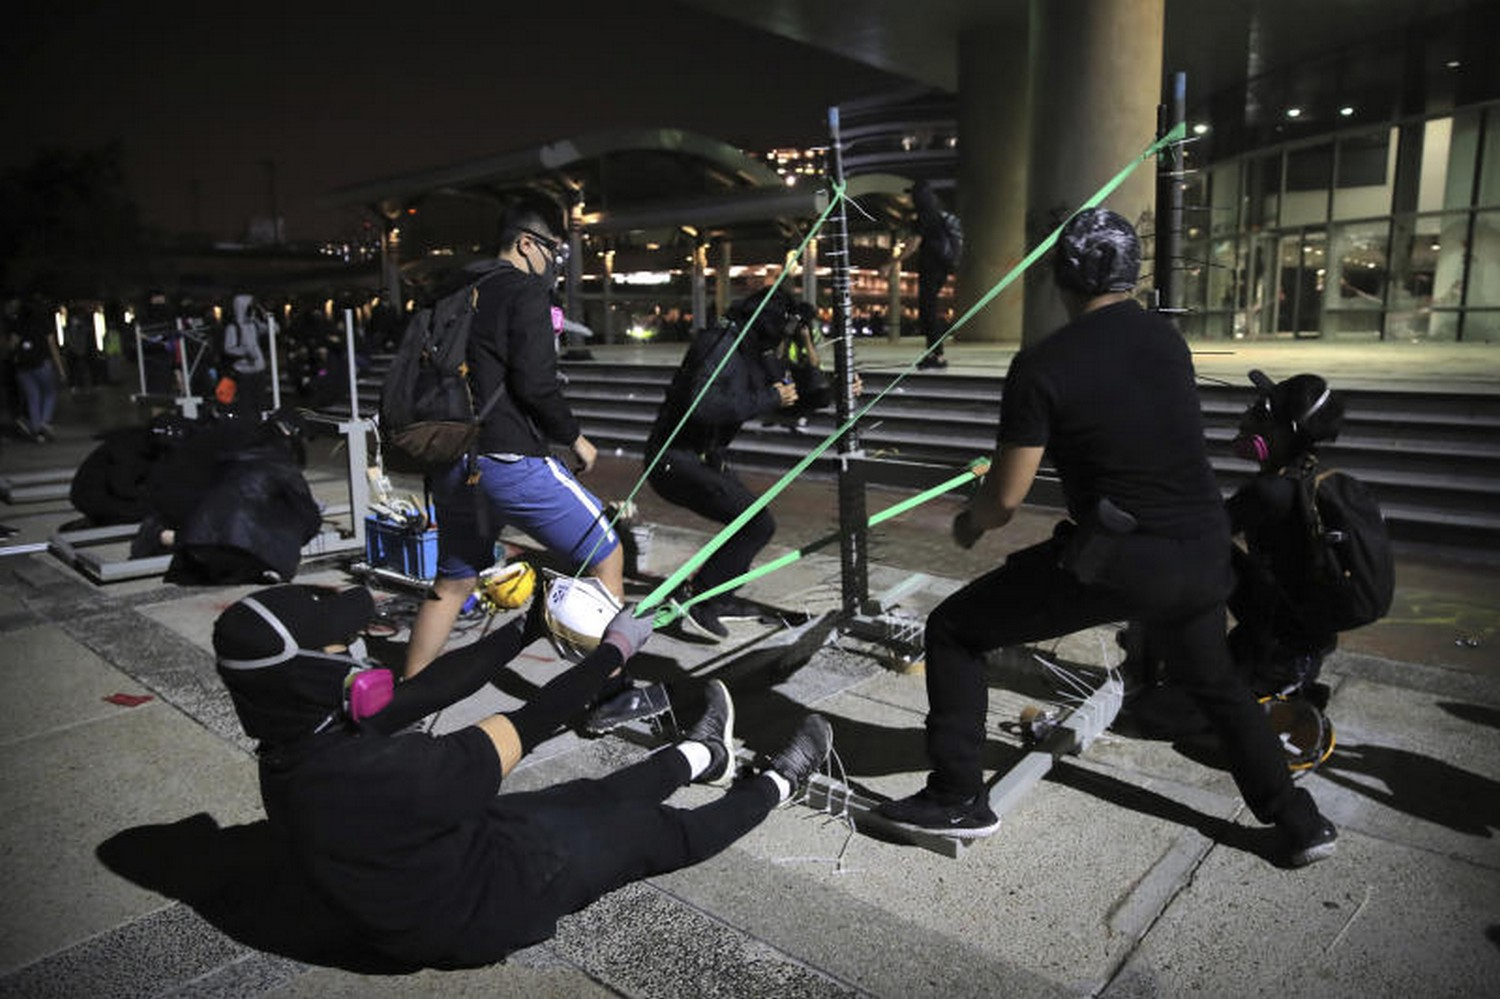 Protesters practice using a homemade slingshot at Hong Kong Polytechnic University in Hong Kong on Thursday. Police warned protesters they were moving